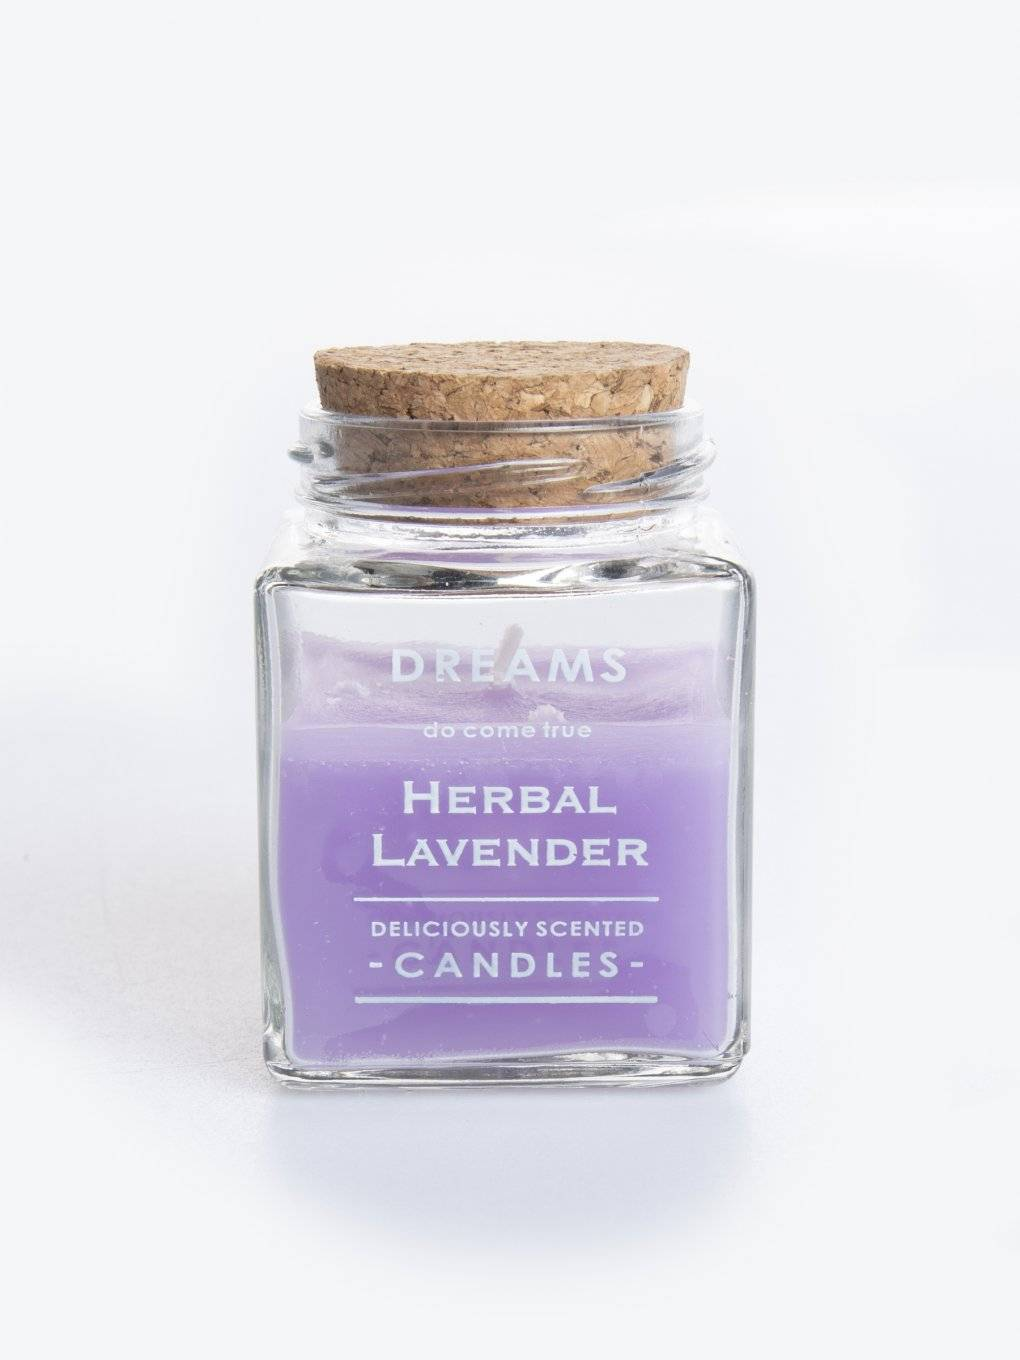 Herbal lavender scented candle